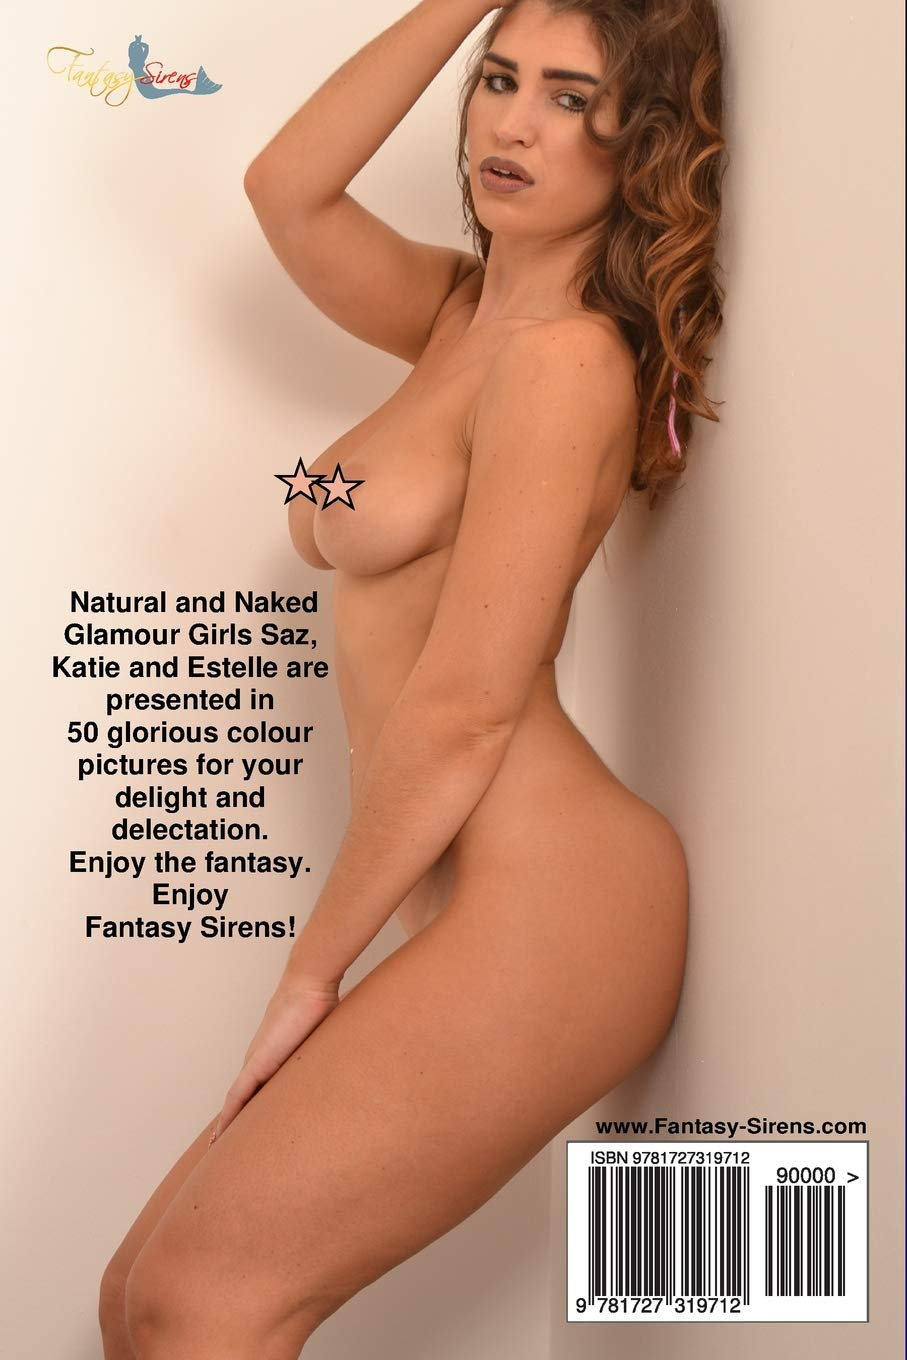 Fantasy Sirens Glamour Girls Natural And Naked Volume 11 Ace Falcon 9781727319712 Amazon Com Books